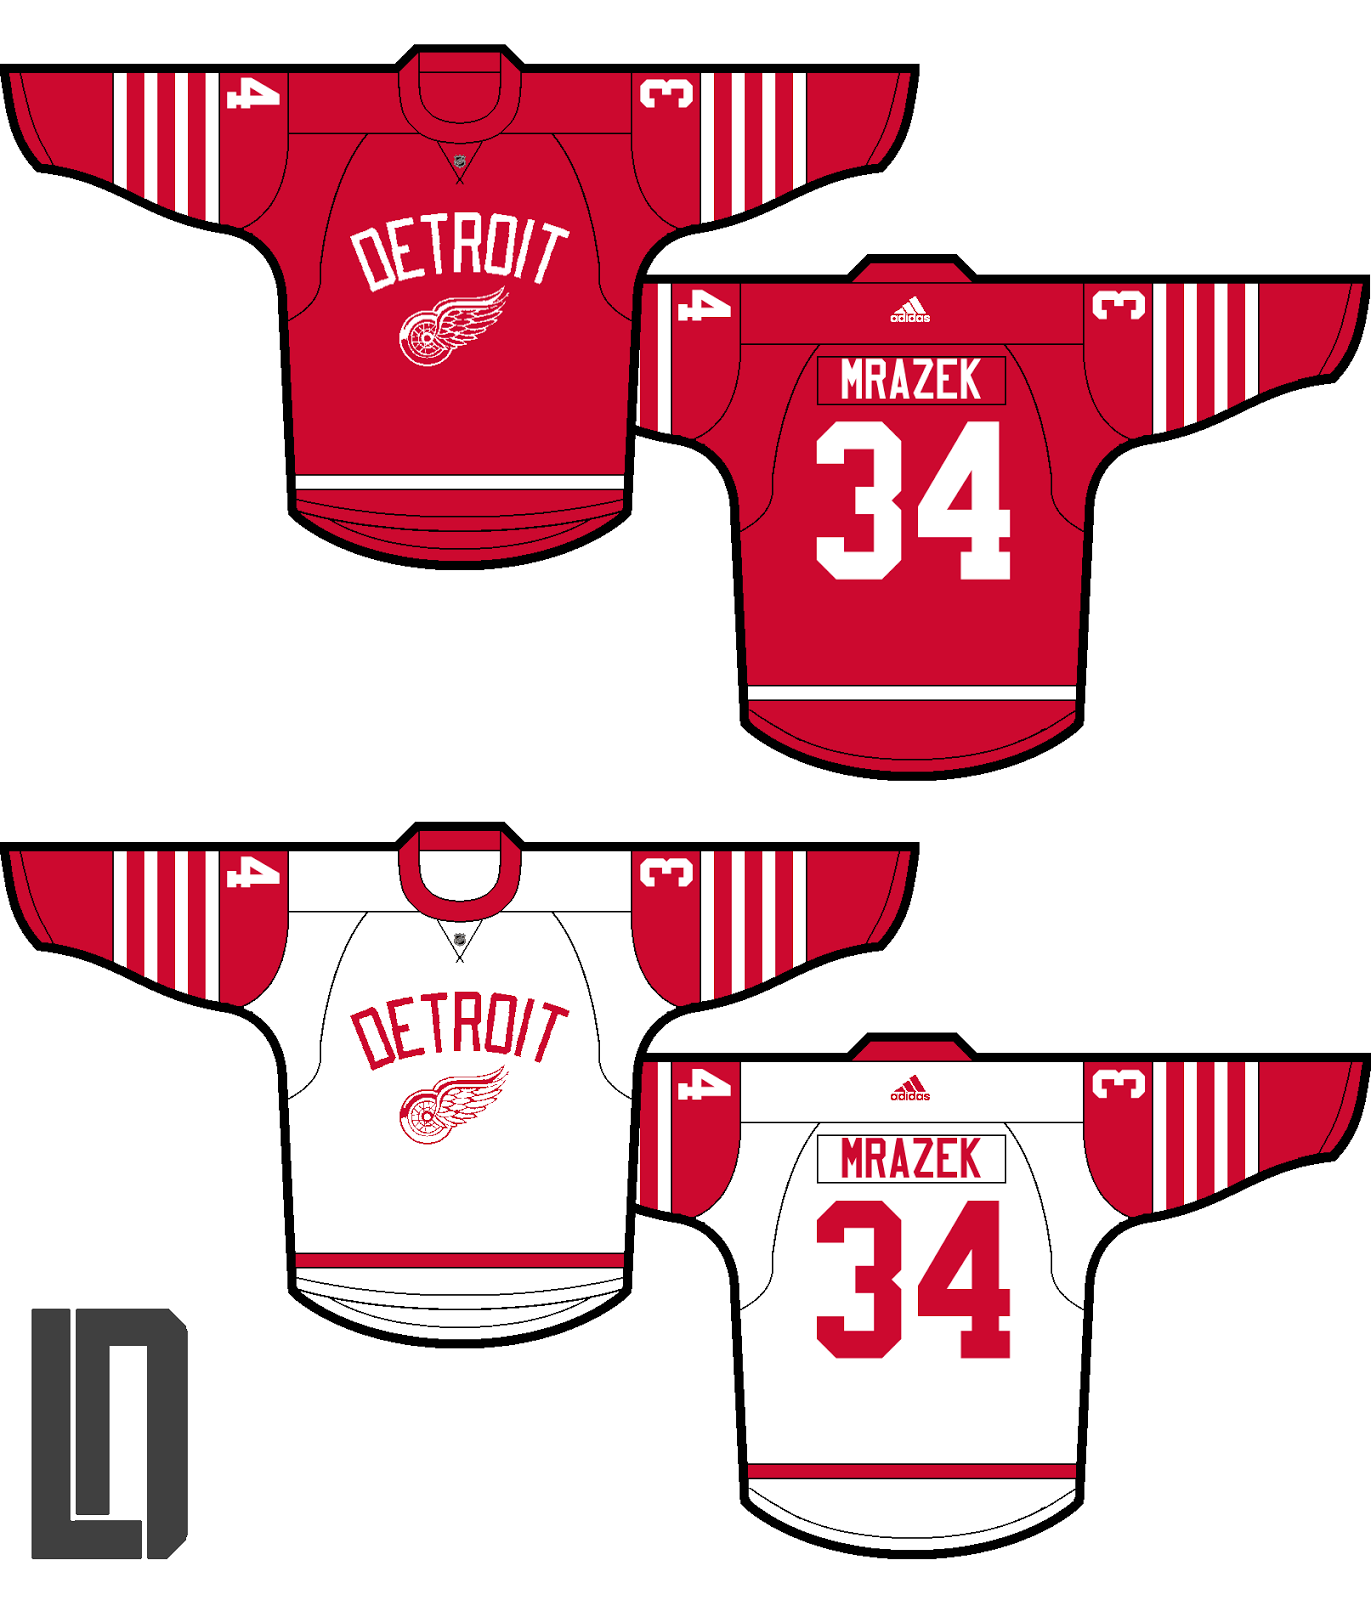 e6c5aa2efe4 Lucas brings us a Red Wings concept based on two of their three latest  outdoor games, the upcoming Centennial Classic and the 2014 Winter Classic.